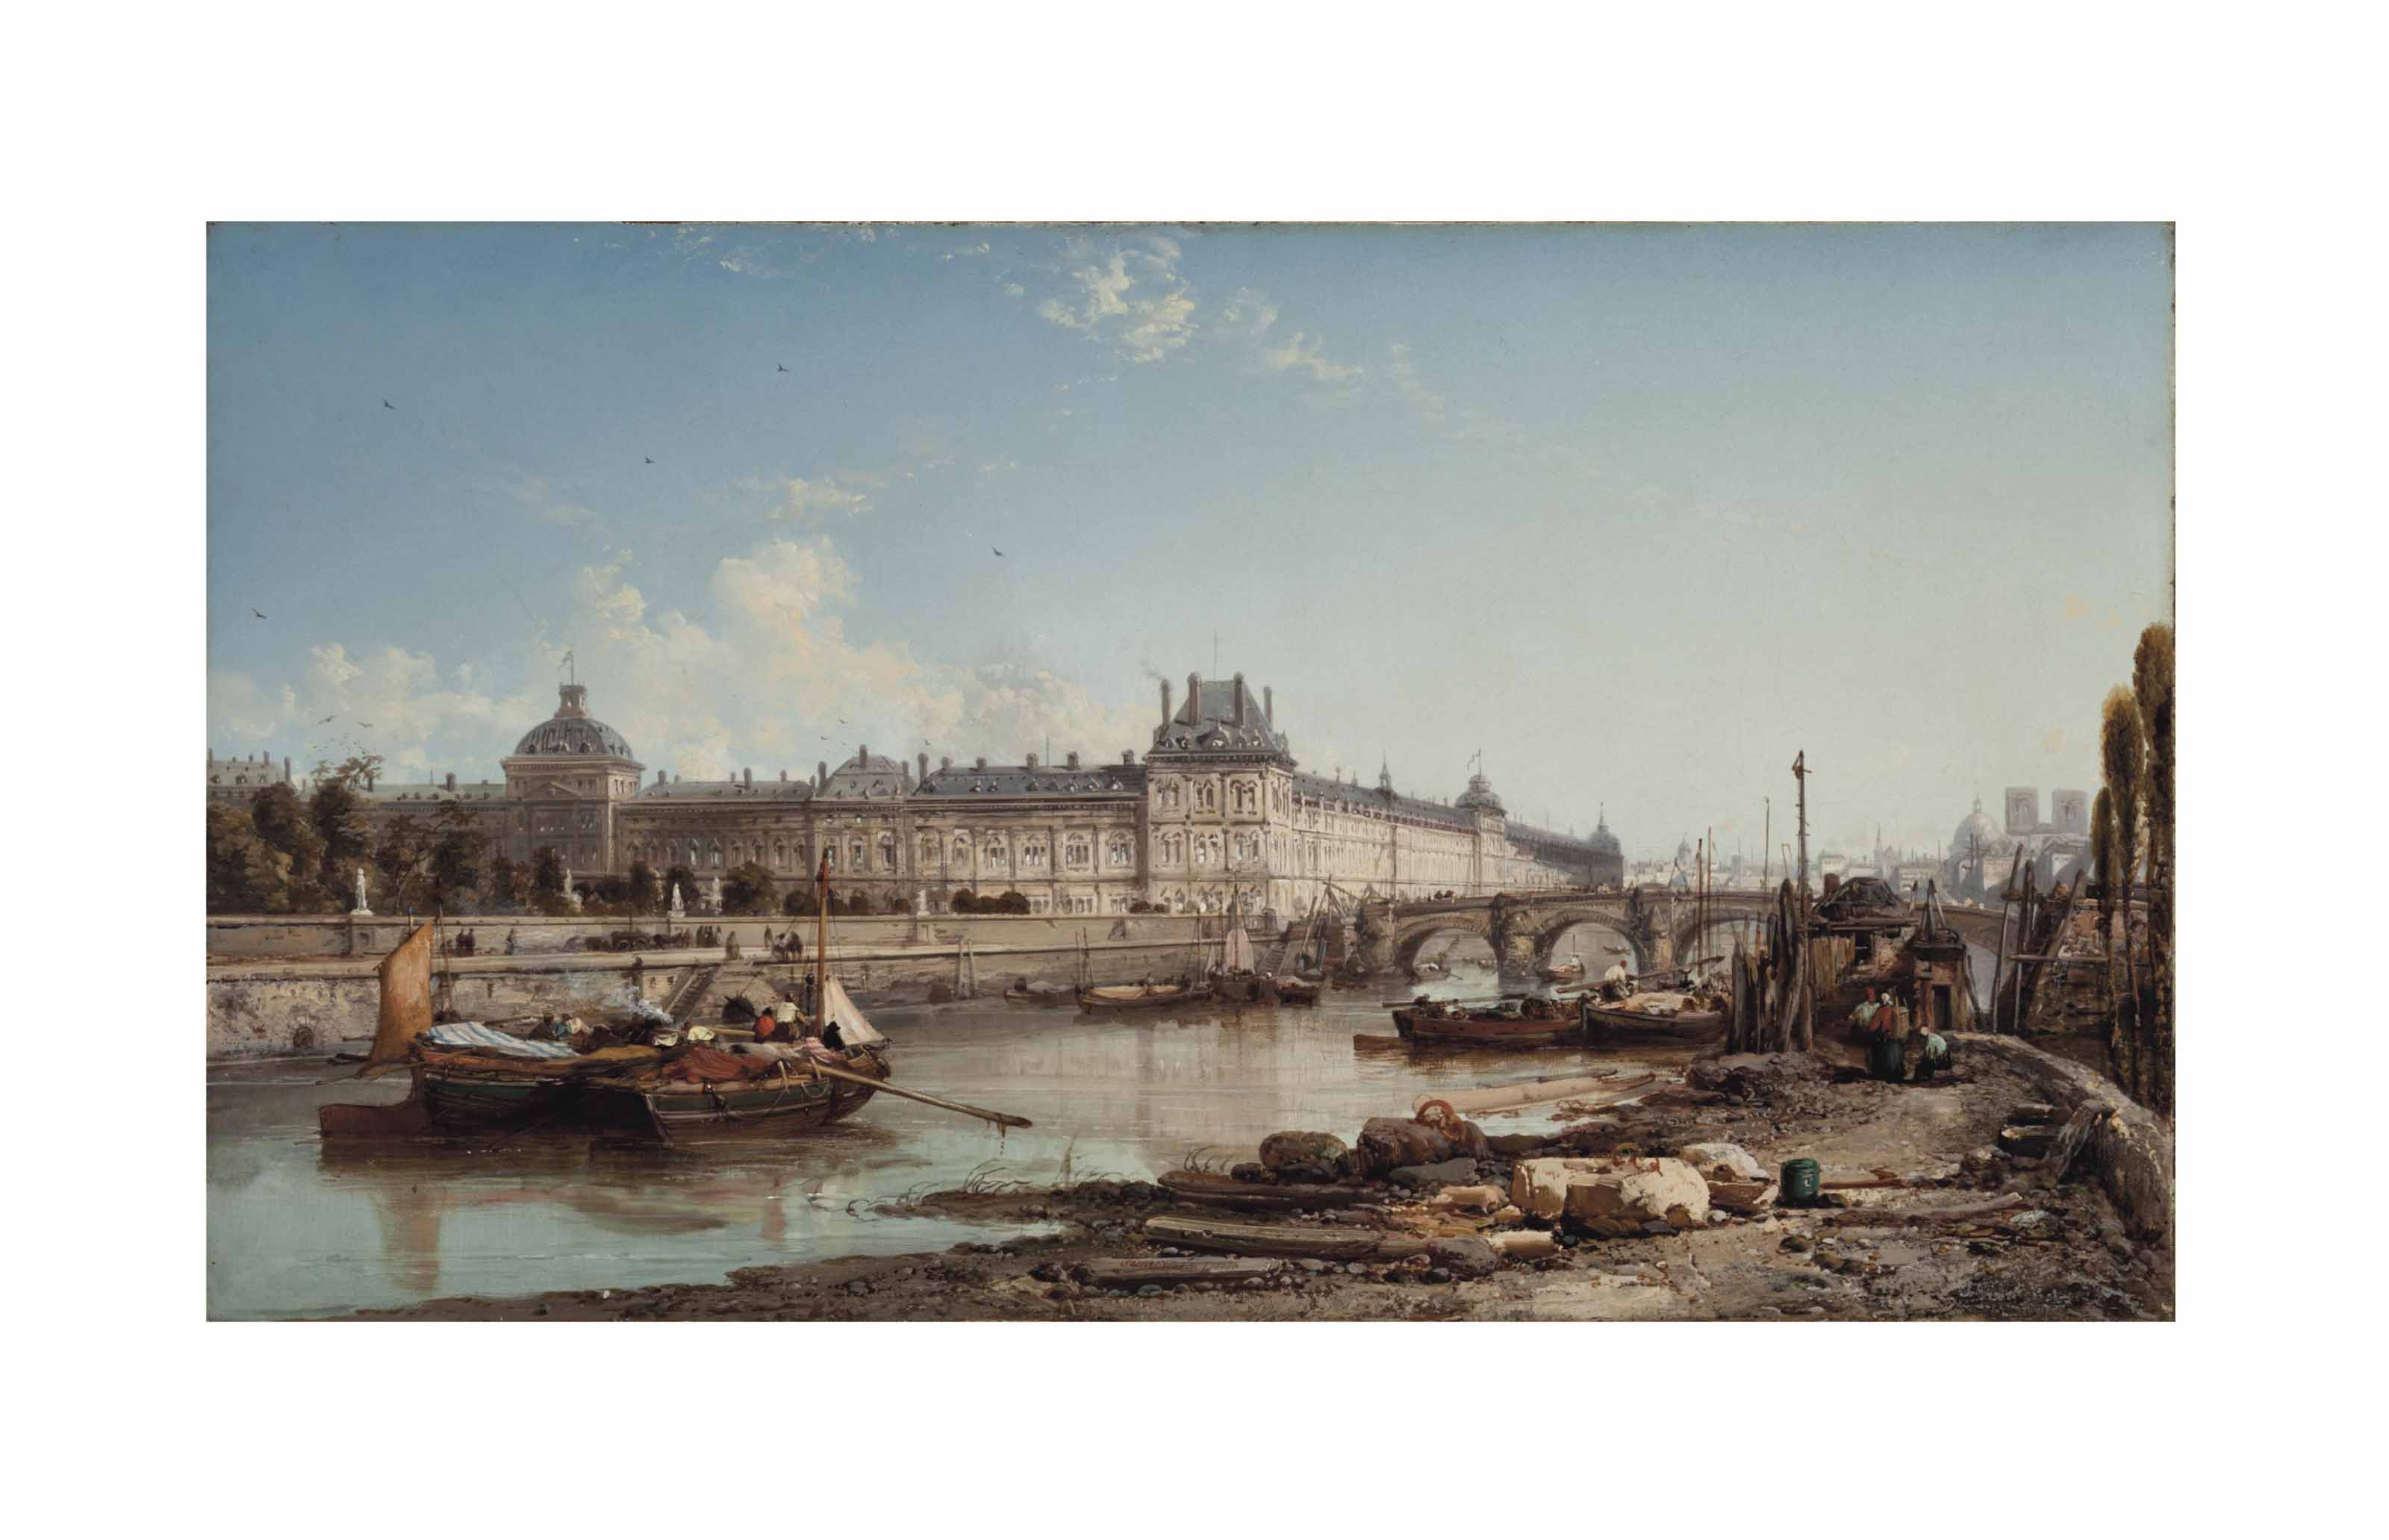 View of the Louvre from the bank of the Seine, Paris